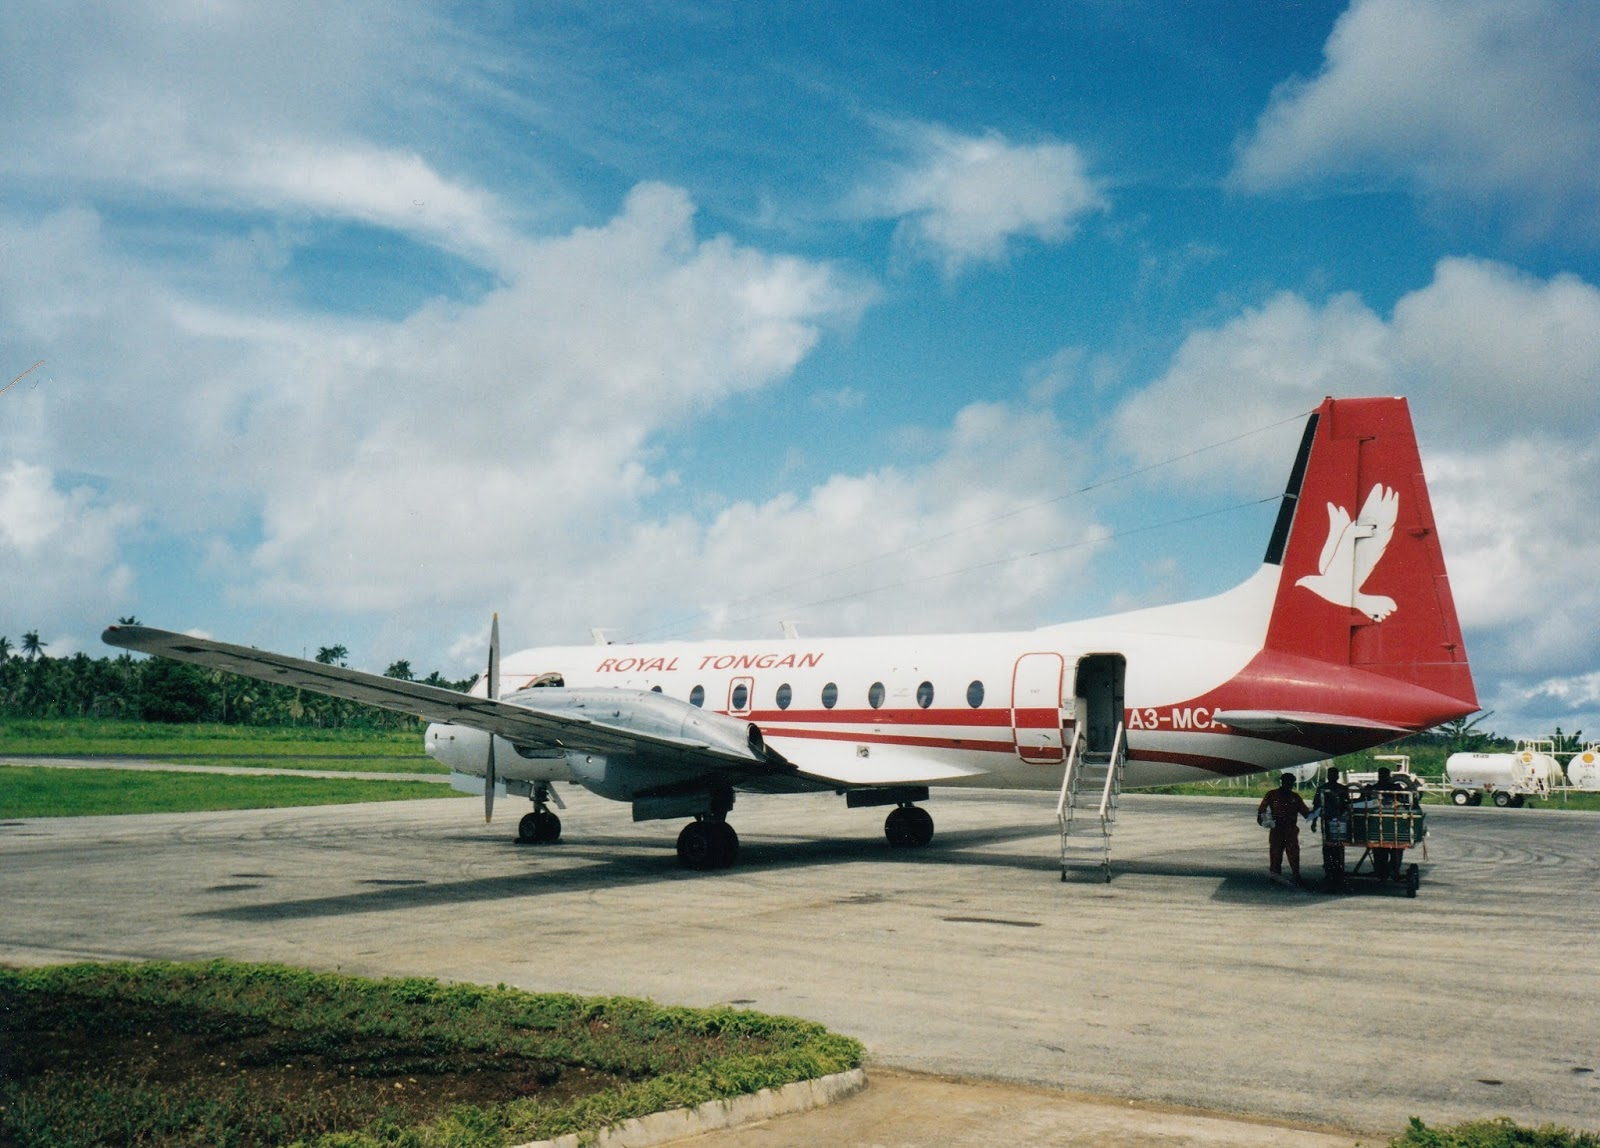 Tonga travel involves some light aircraft hopping between the islands